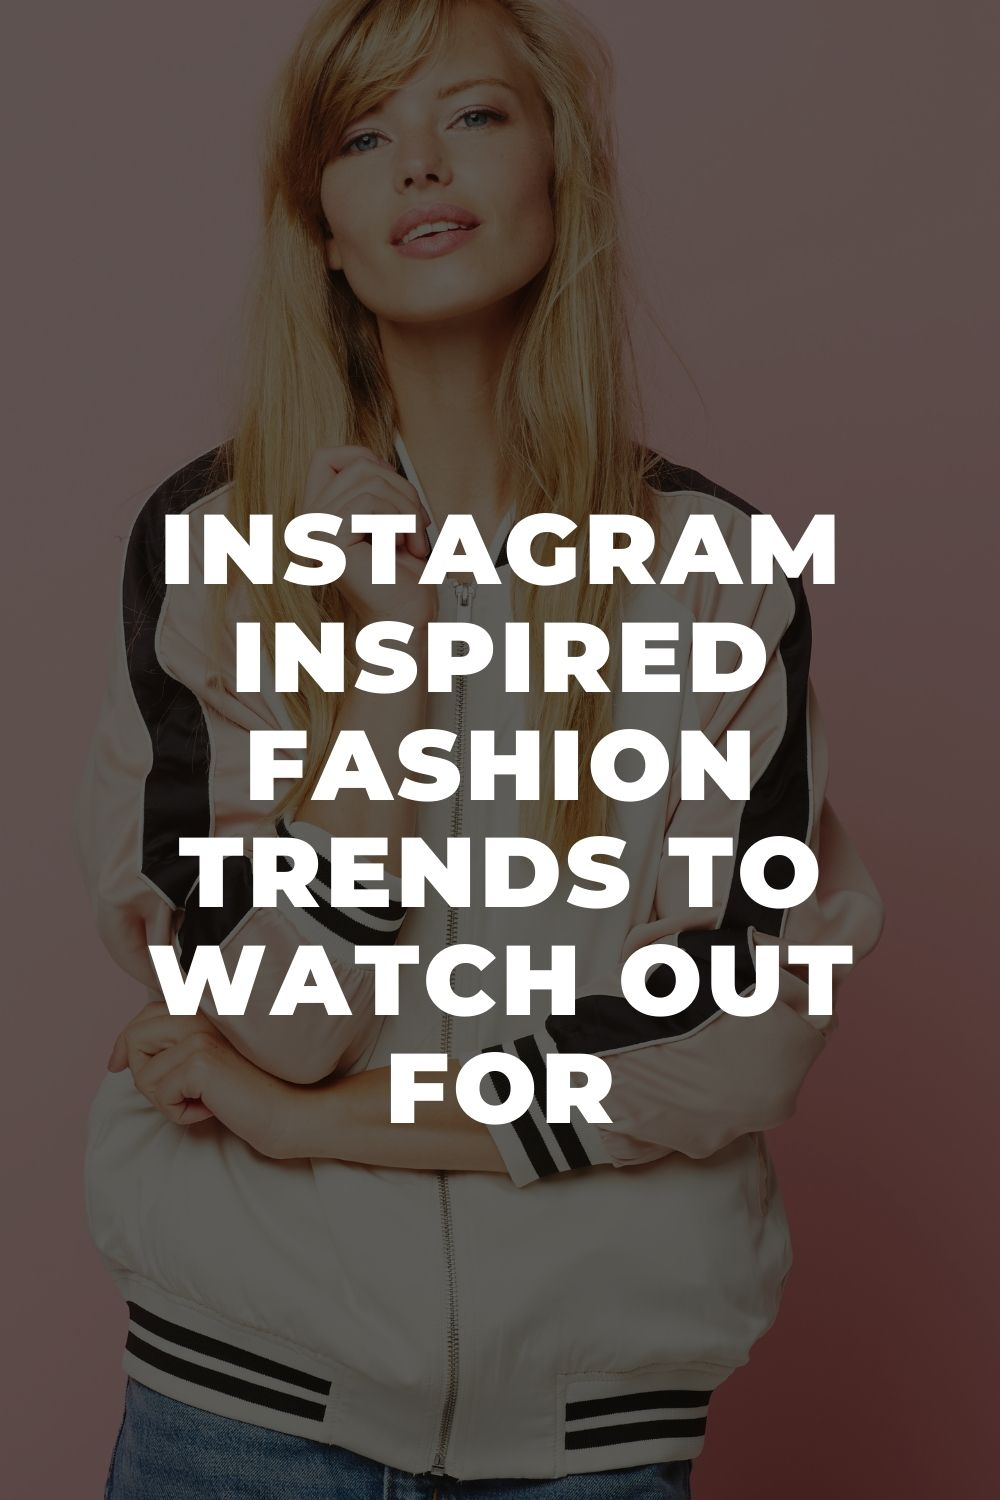 Instagram Inspired Fashion Trends to Watch Out For